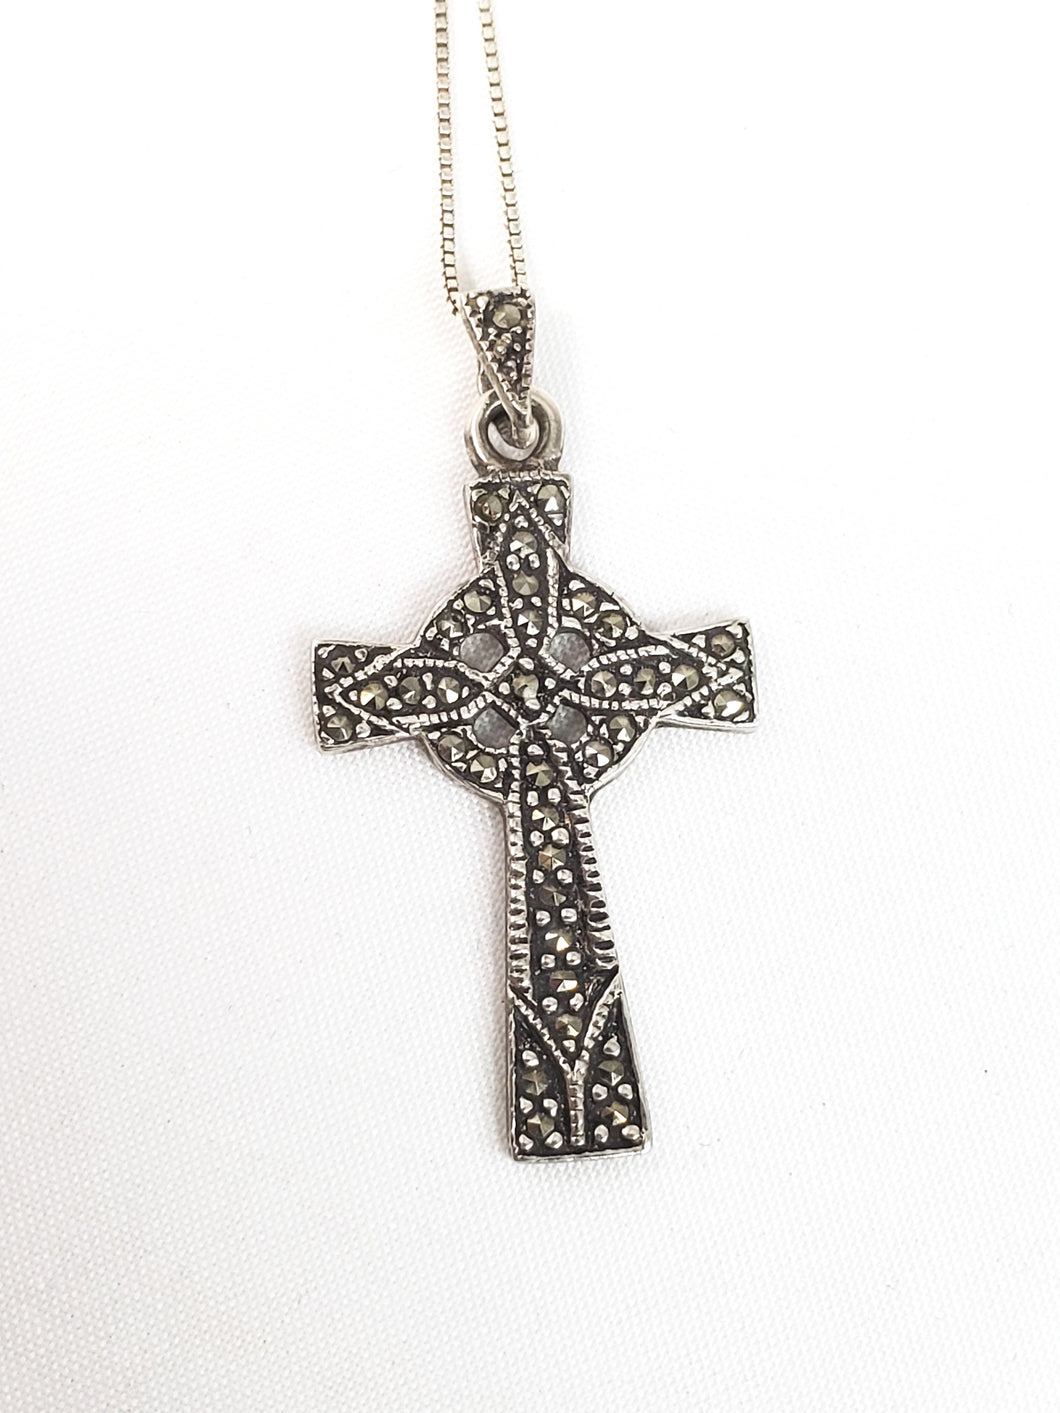 Vintage MJW marcasite and sterling silver cross necklace 925